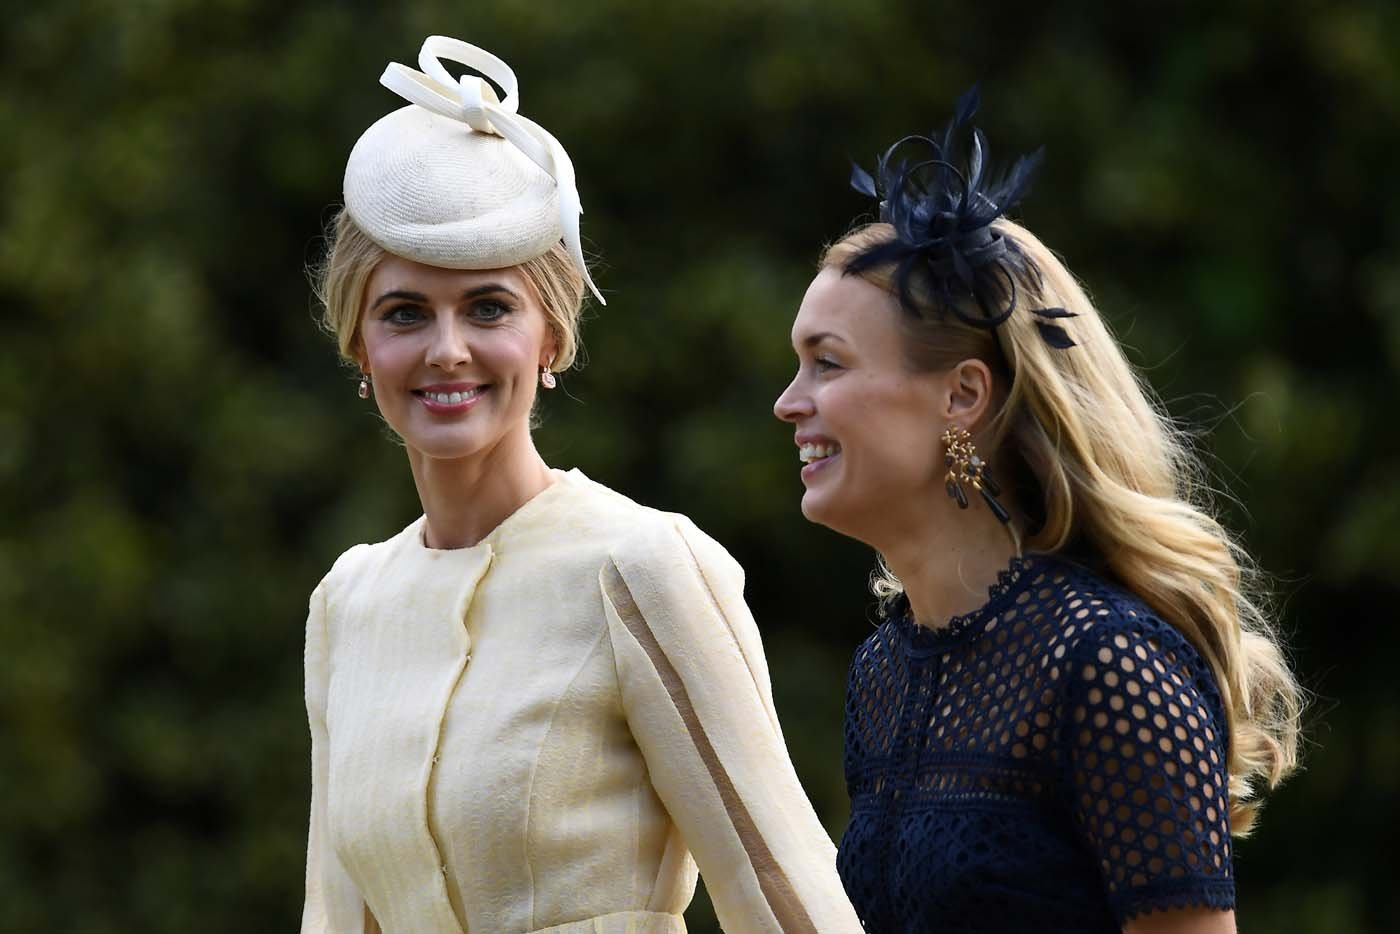 Donna Air (L) attends the wedding of Pippa Middleton and James Matthews at St Mark's Church in Englefield, west of London, on May 20, 2017. REUTERS/Justin Tallis/Pool